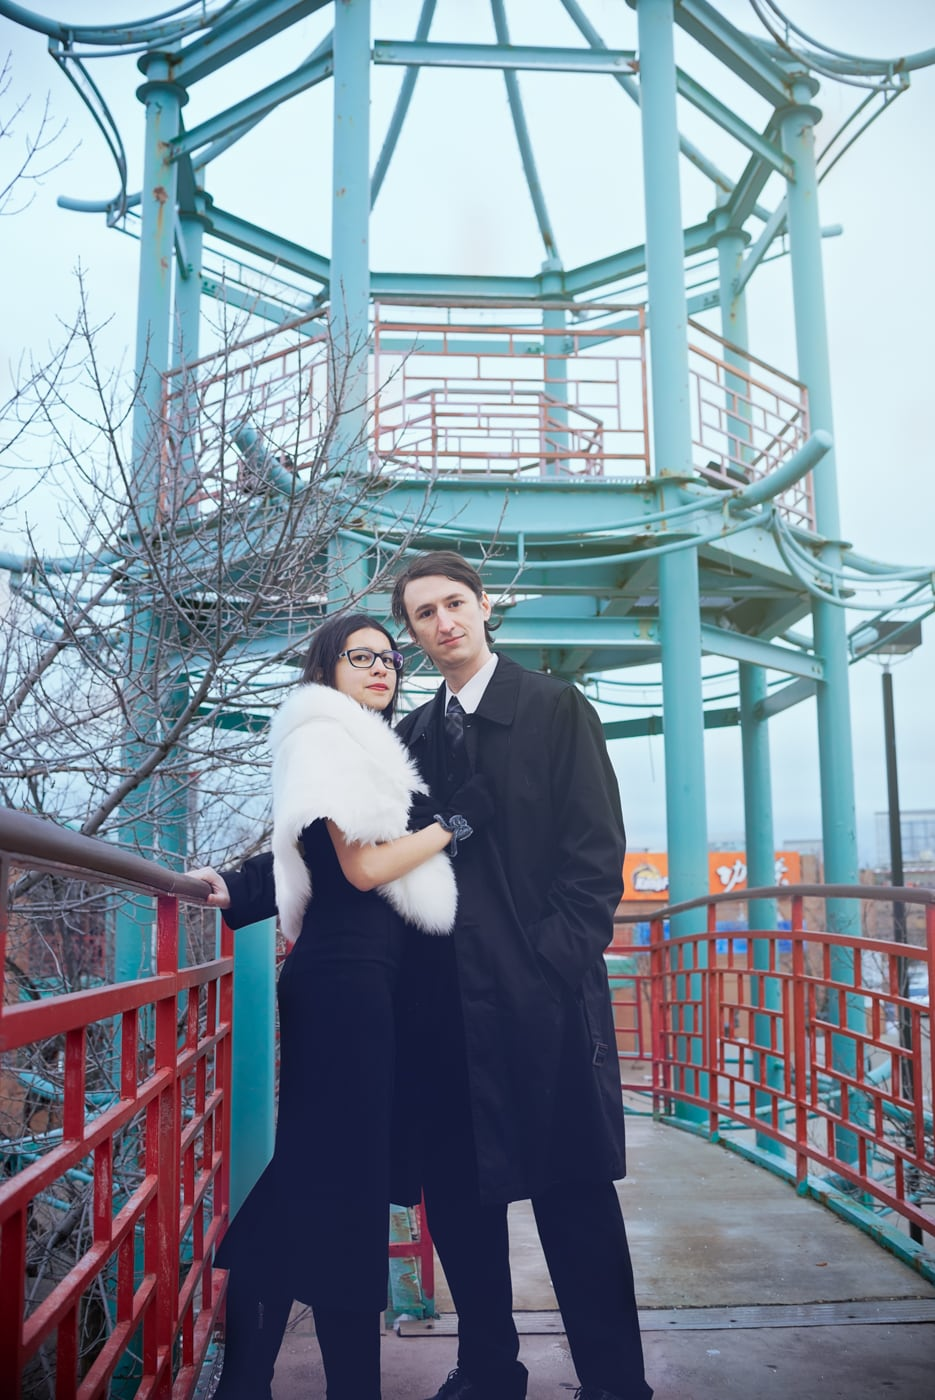 A contemporary and creative portrait session of a couple in Chicago. Wearing 1940's and 1950's film noir inspired fur stole, black dress, and gloves. Chinatown at Archer avenue photography.